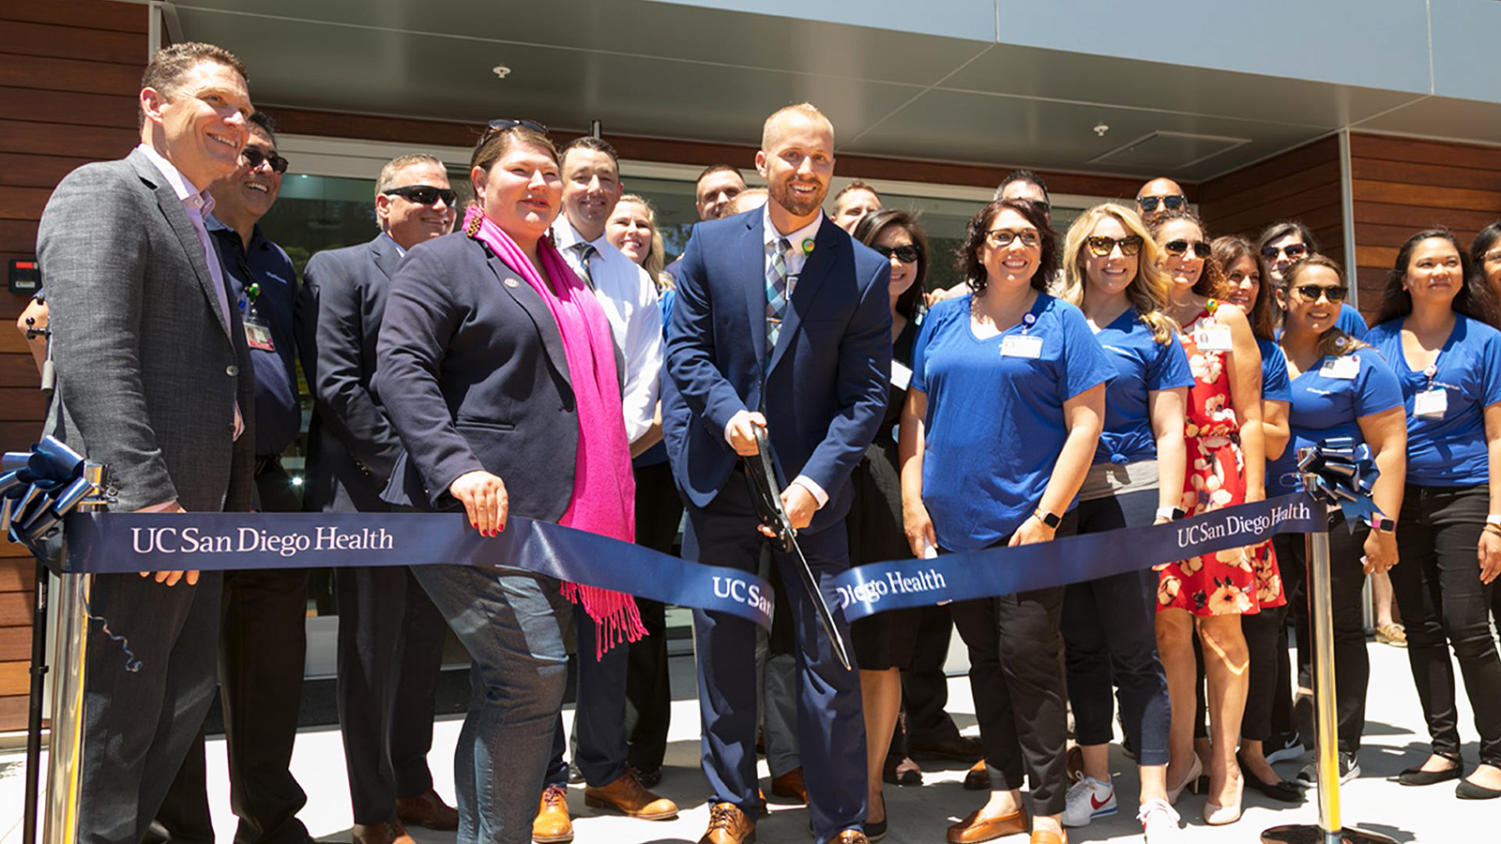 Dr. Christopher Kane, UC San Diego Health Physician Group CEO (far left); state Assemblywoman Tasha Boerner Horvath, D-76th District (second from left, holding ribbon), and Kevin Schwerdtfeger, regional practice manager (holding scissors) celebrate the opening of UC San Diego Health's new Encinitas health center on June 10 with other facility officials and employees. (UC San Diego Health photo)